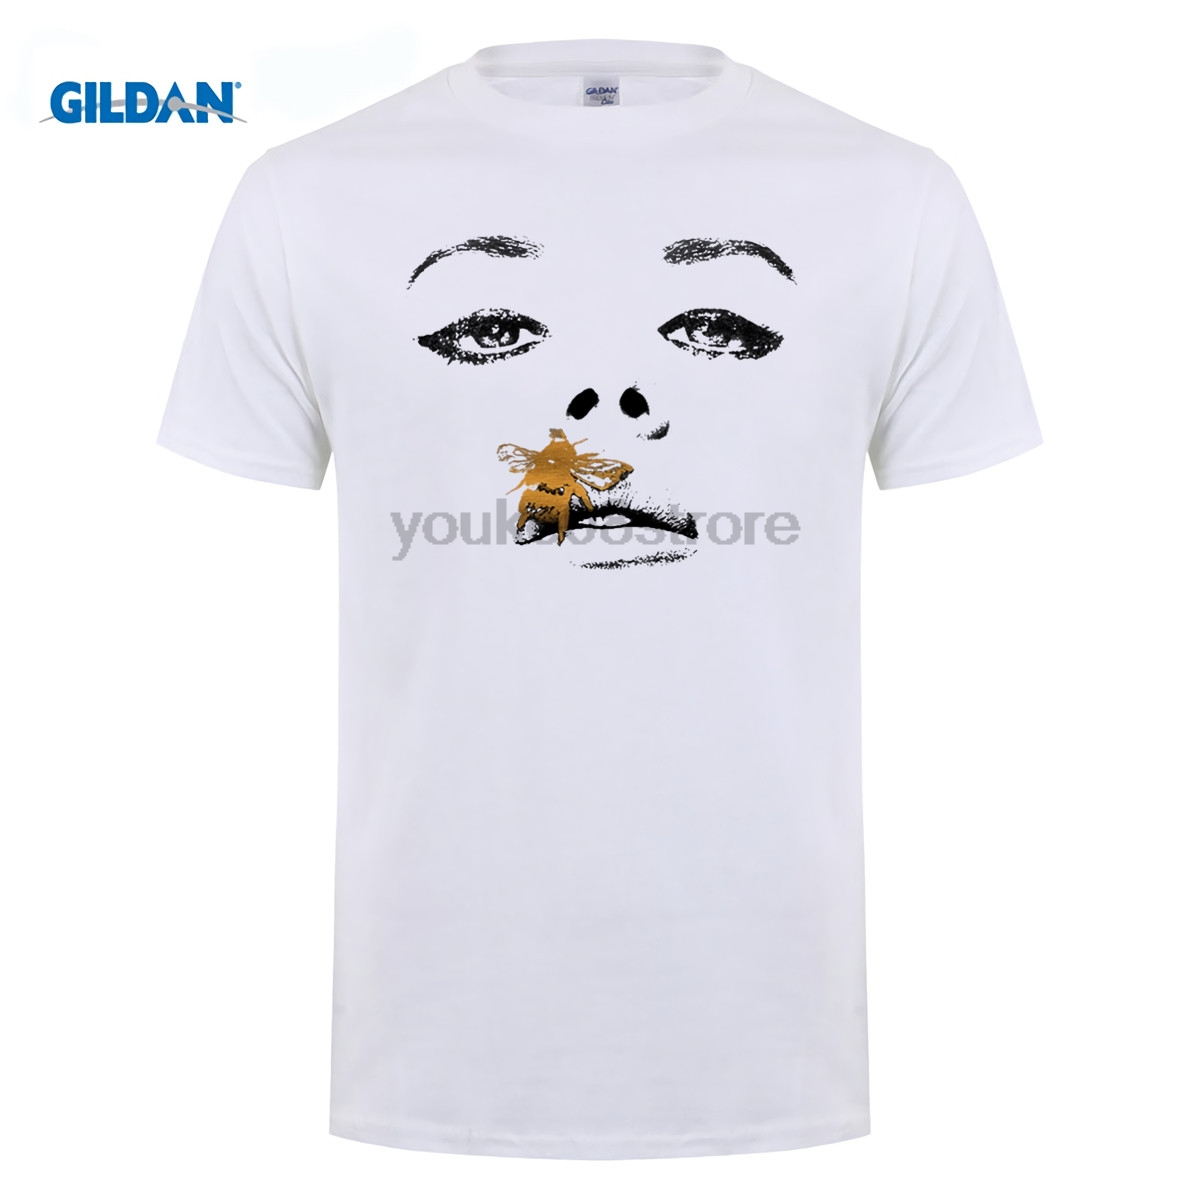 GILDAN Harajuku t-shirt men Amy Winehouse/R.I.P whitney houston/ lana del rey print t shirt